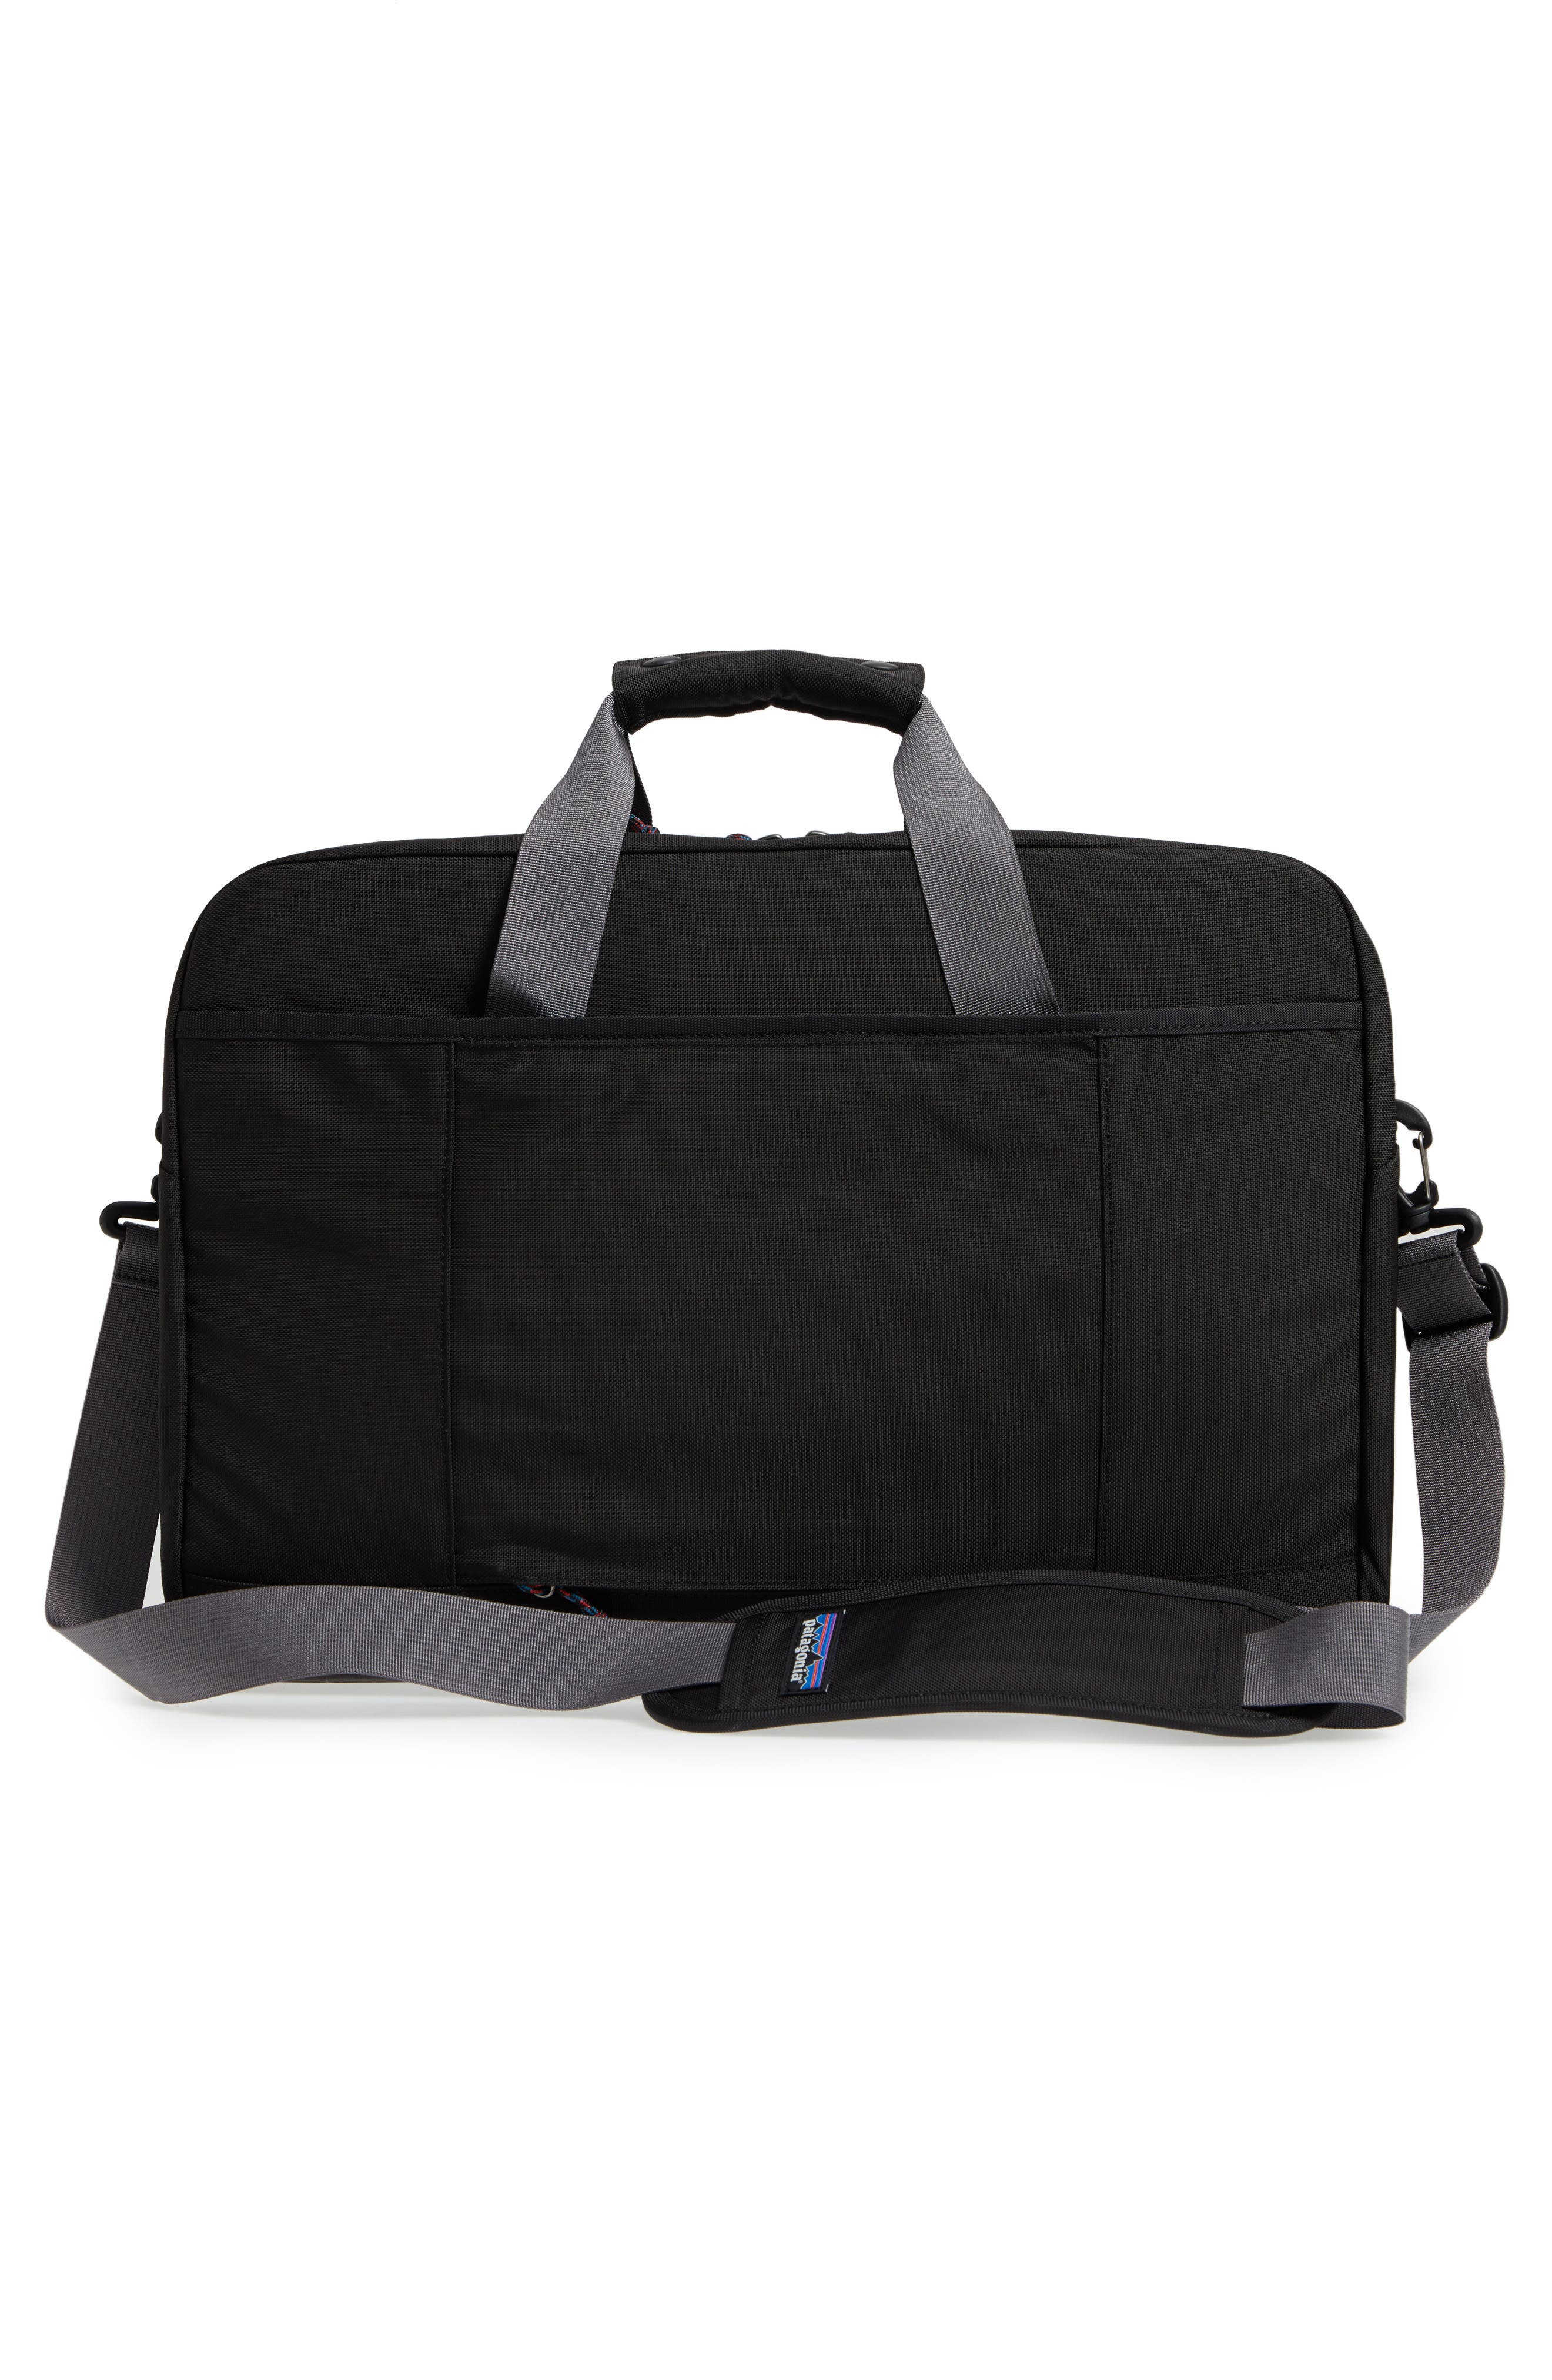 Headway Briefcase,                             Alternate thumbnail 3, color,                             001